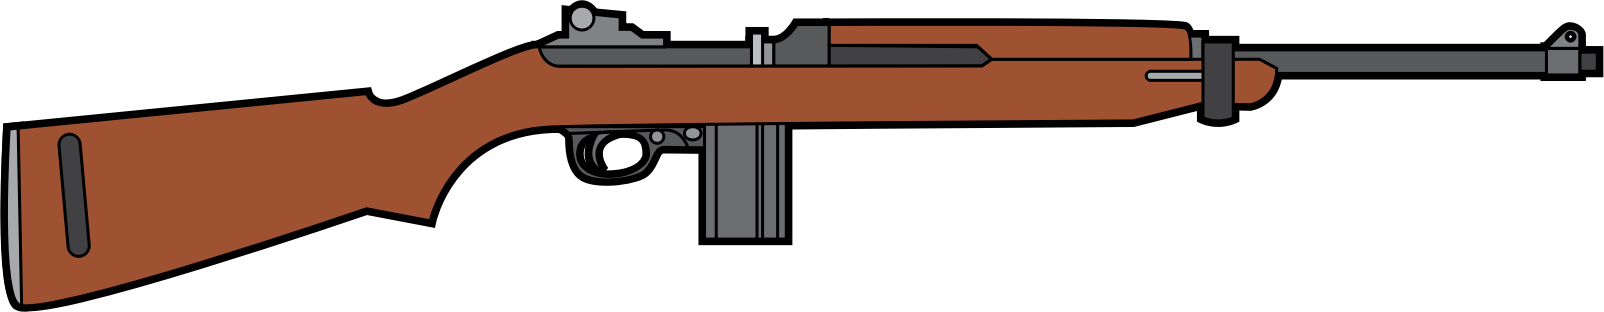 M1 Carbine rifle by ray4ad